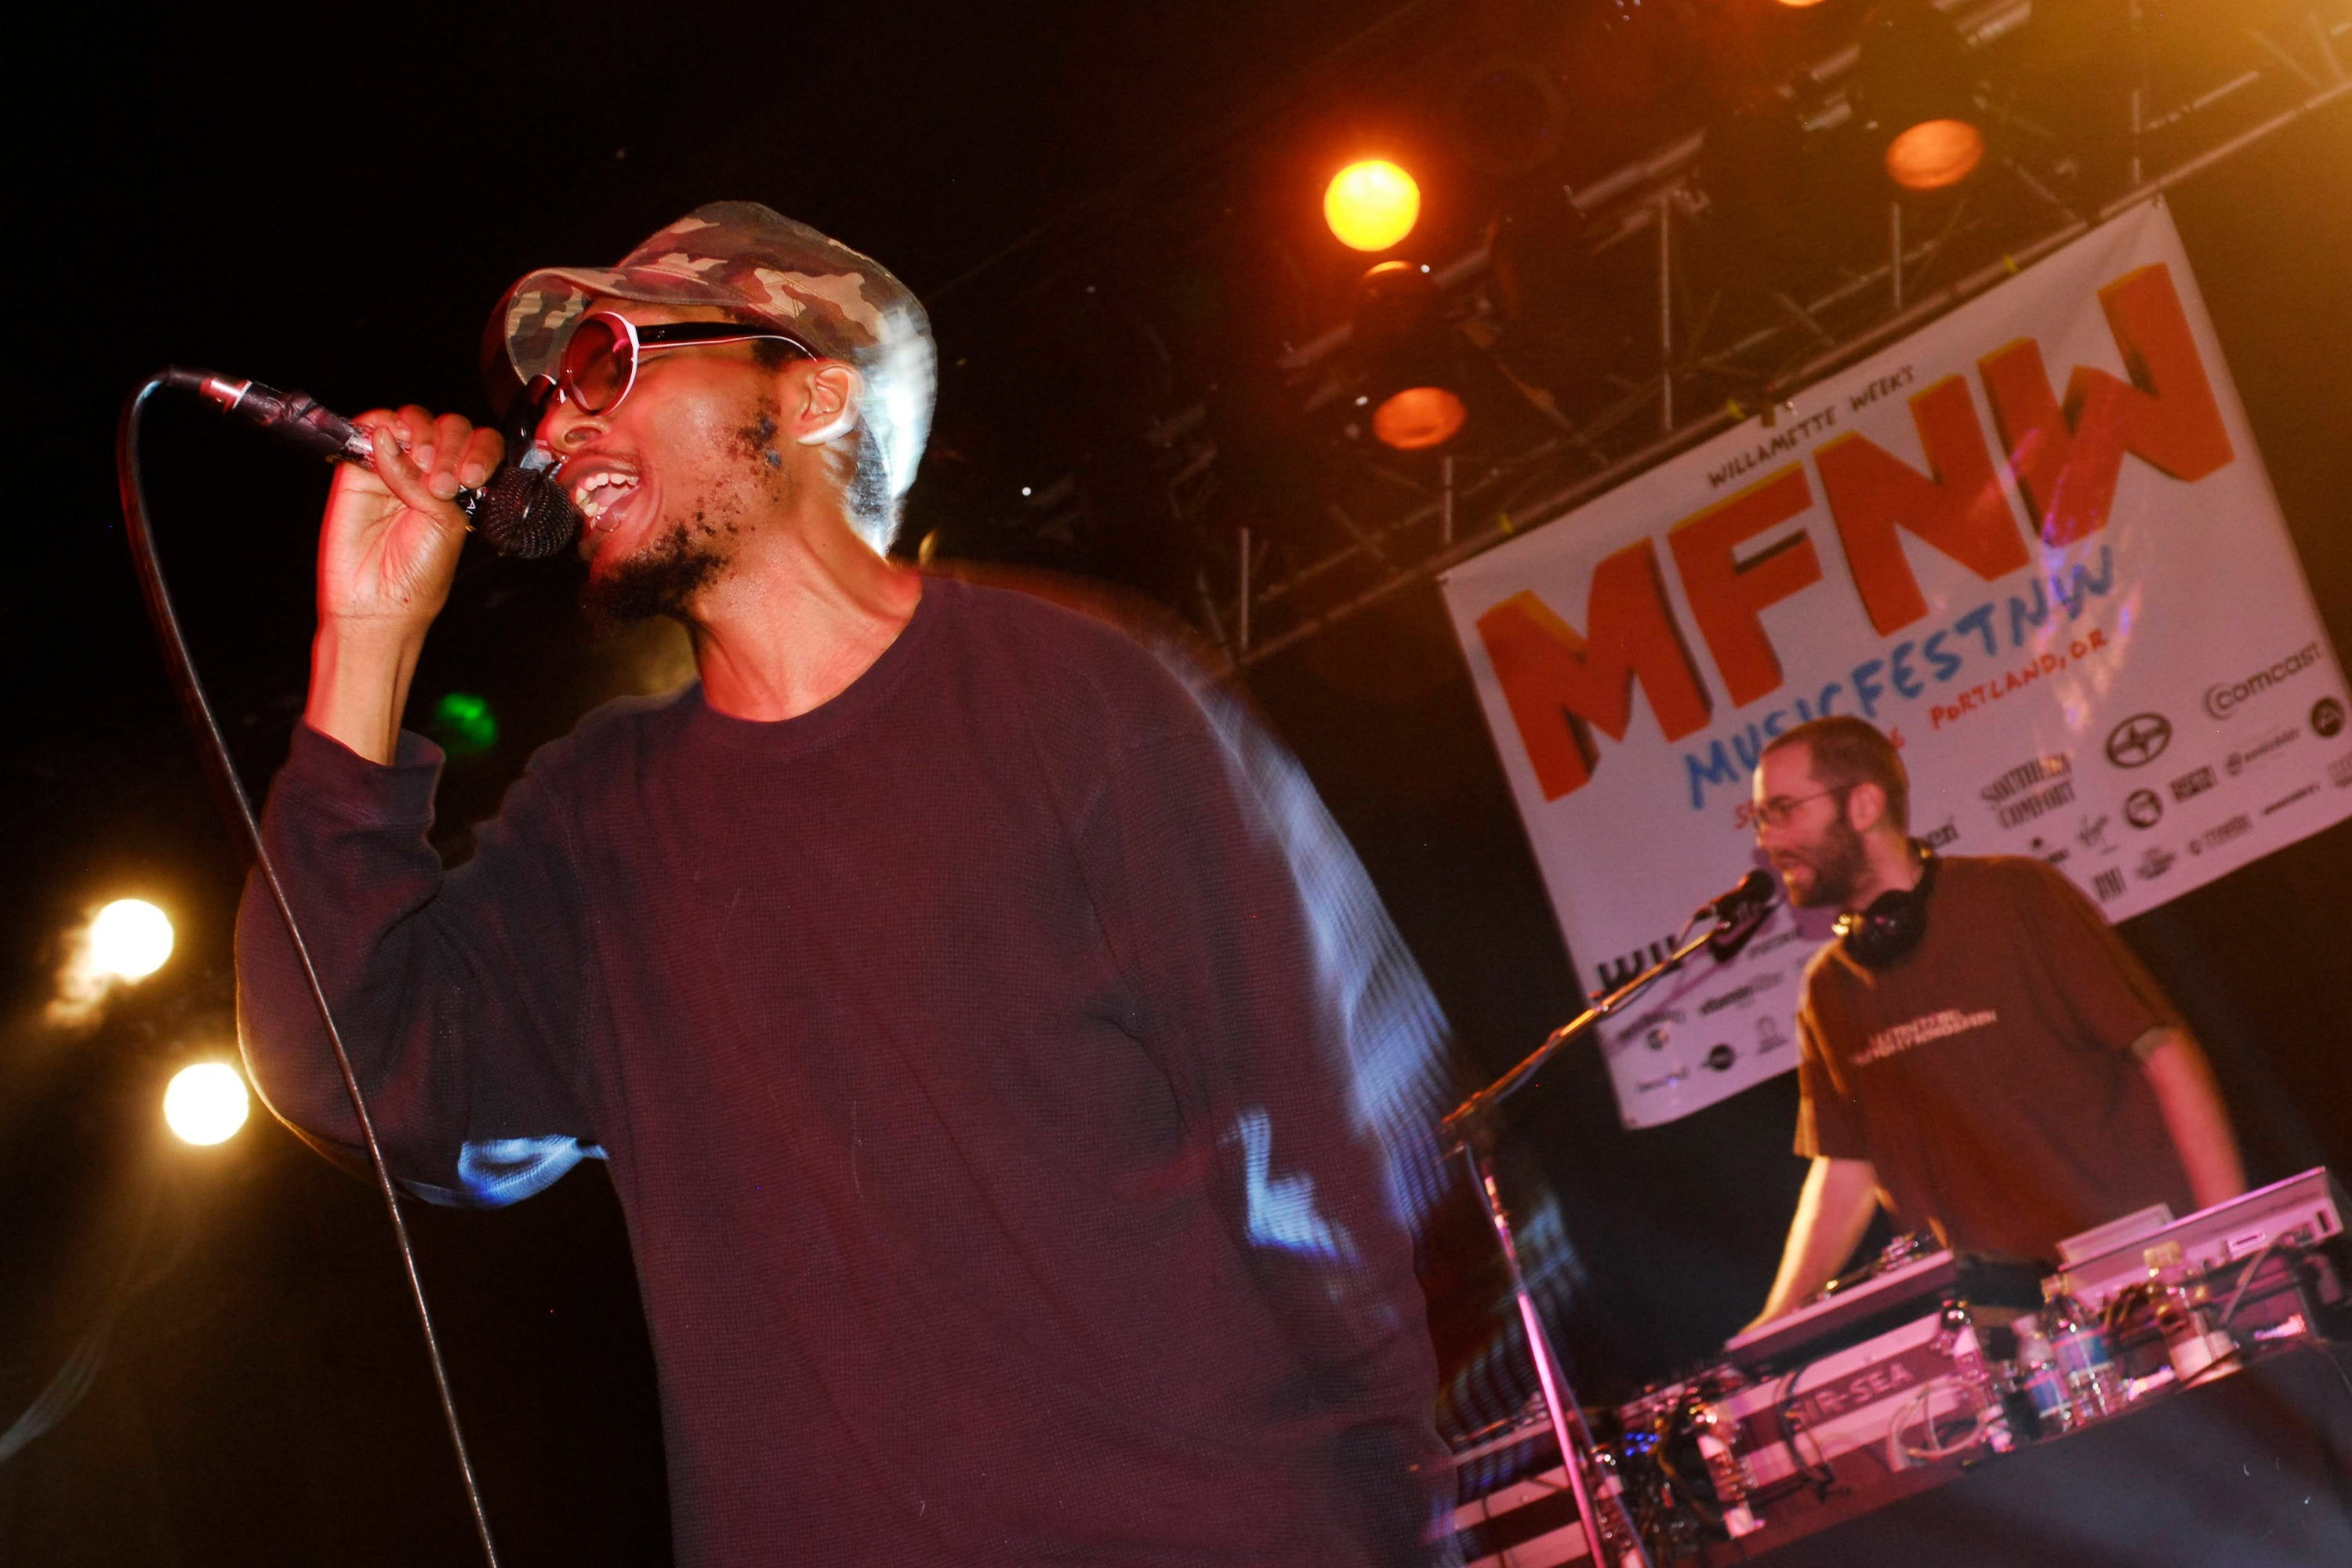 Del Tha Funkee Homosapien performing on stage (Photo by Anthony Pidgeon/Redferns)